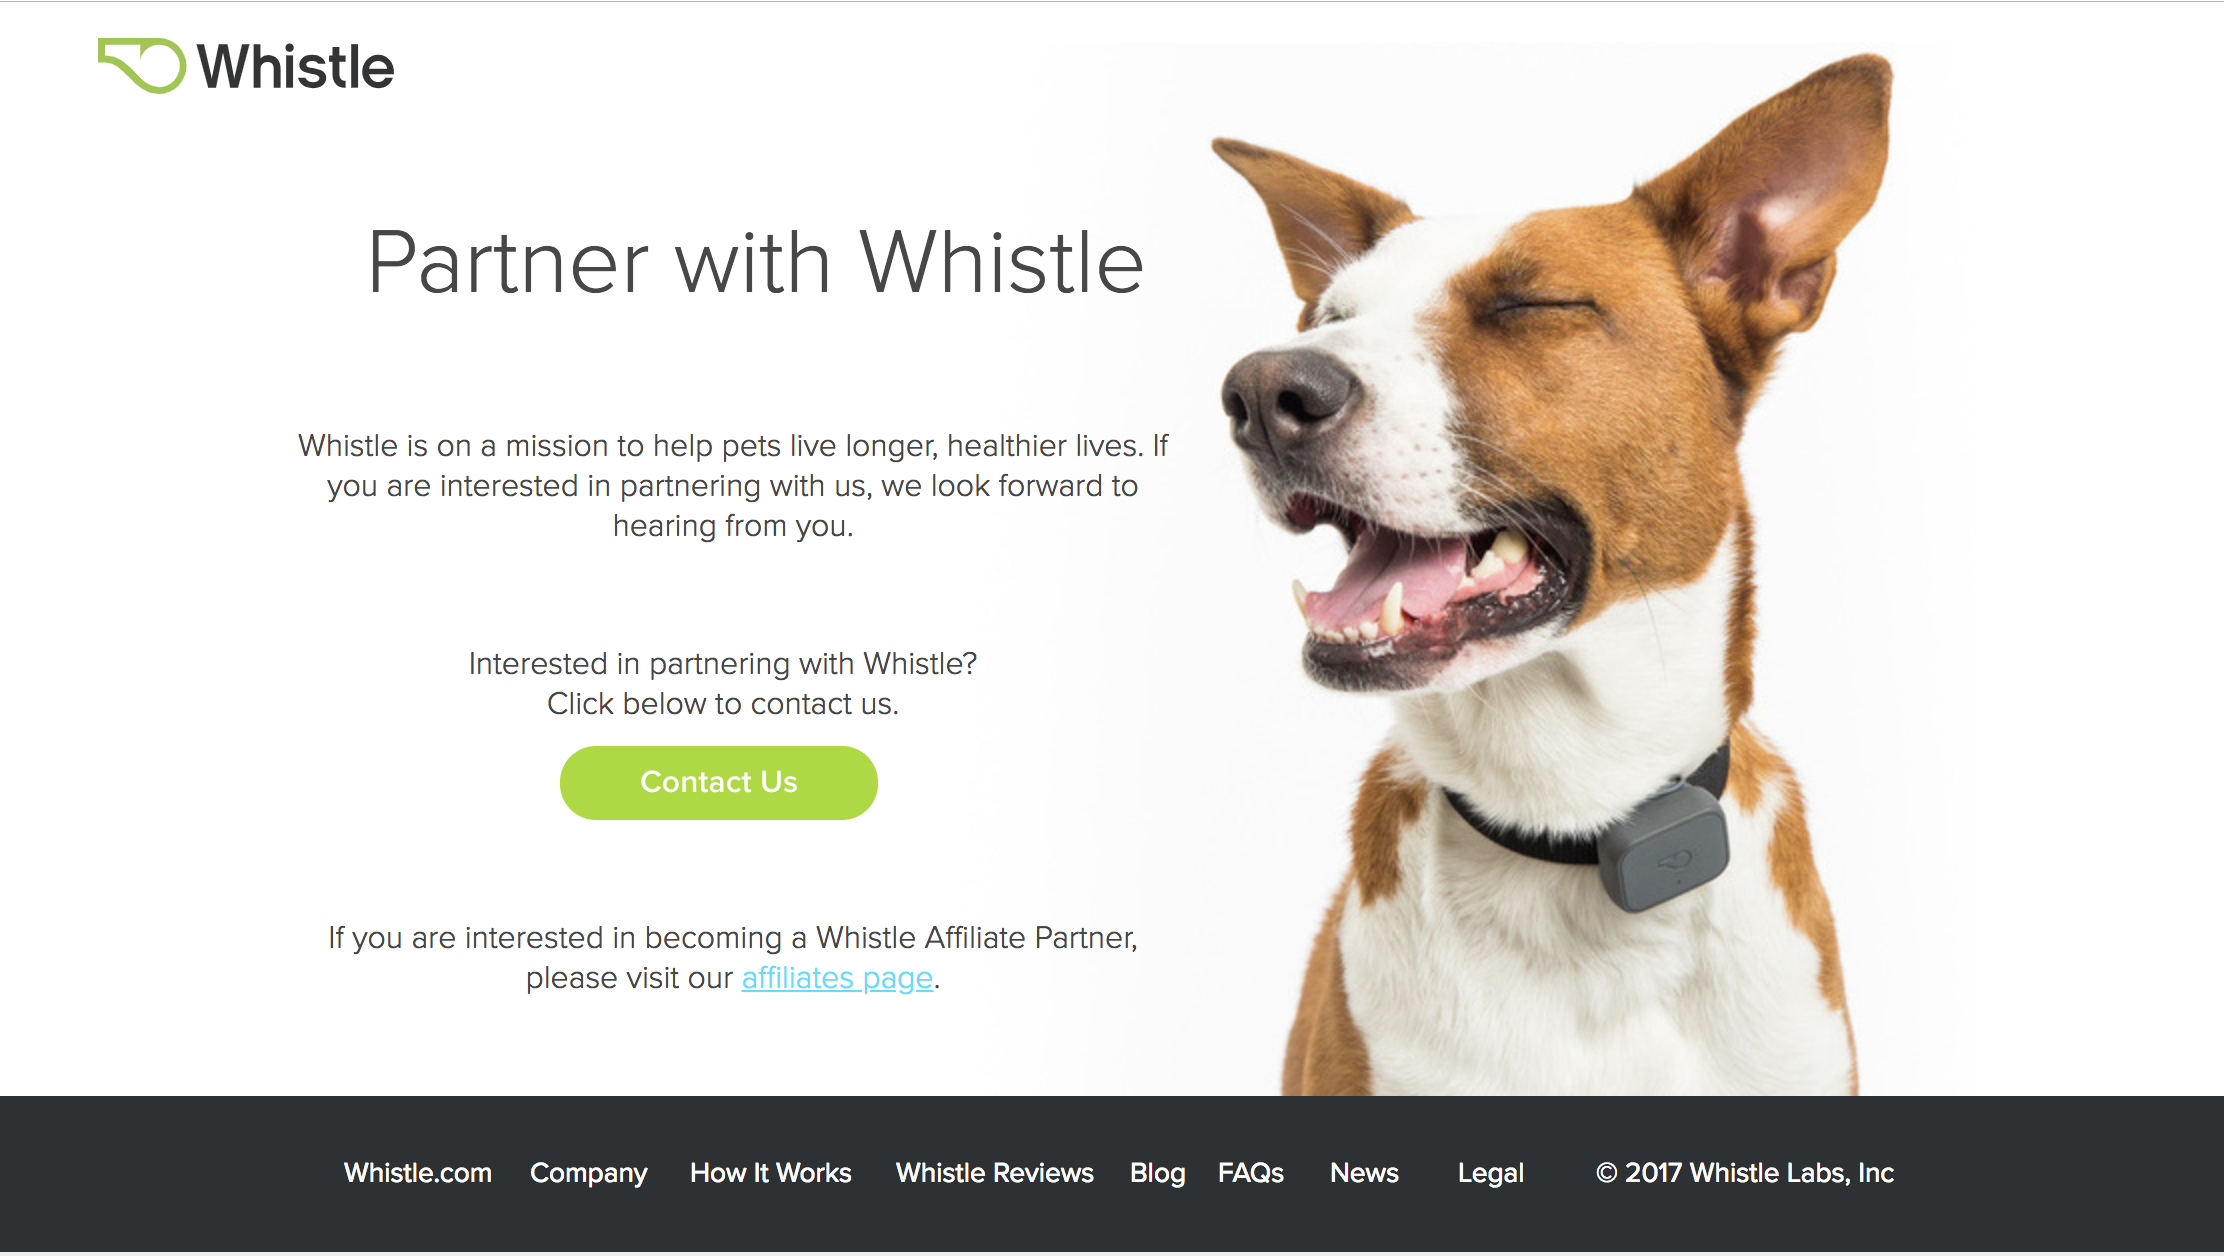 Whistle Partner Program - Developed and managed a scalable partner program to manager inbound non-profit, retail, wholesale, and marketing partnership requests.Scope of Work: Partnership evaluations and system management. Inbound marketingYear: 2017